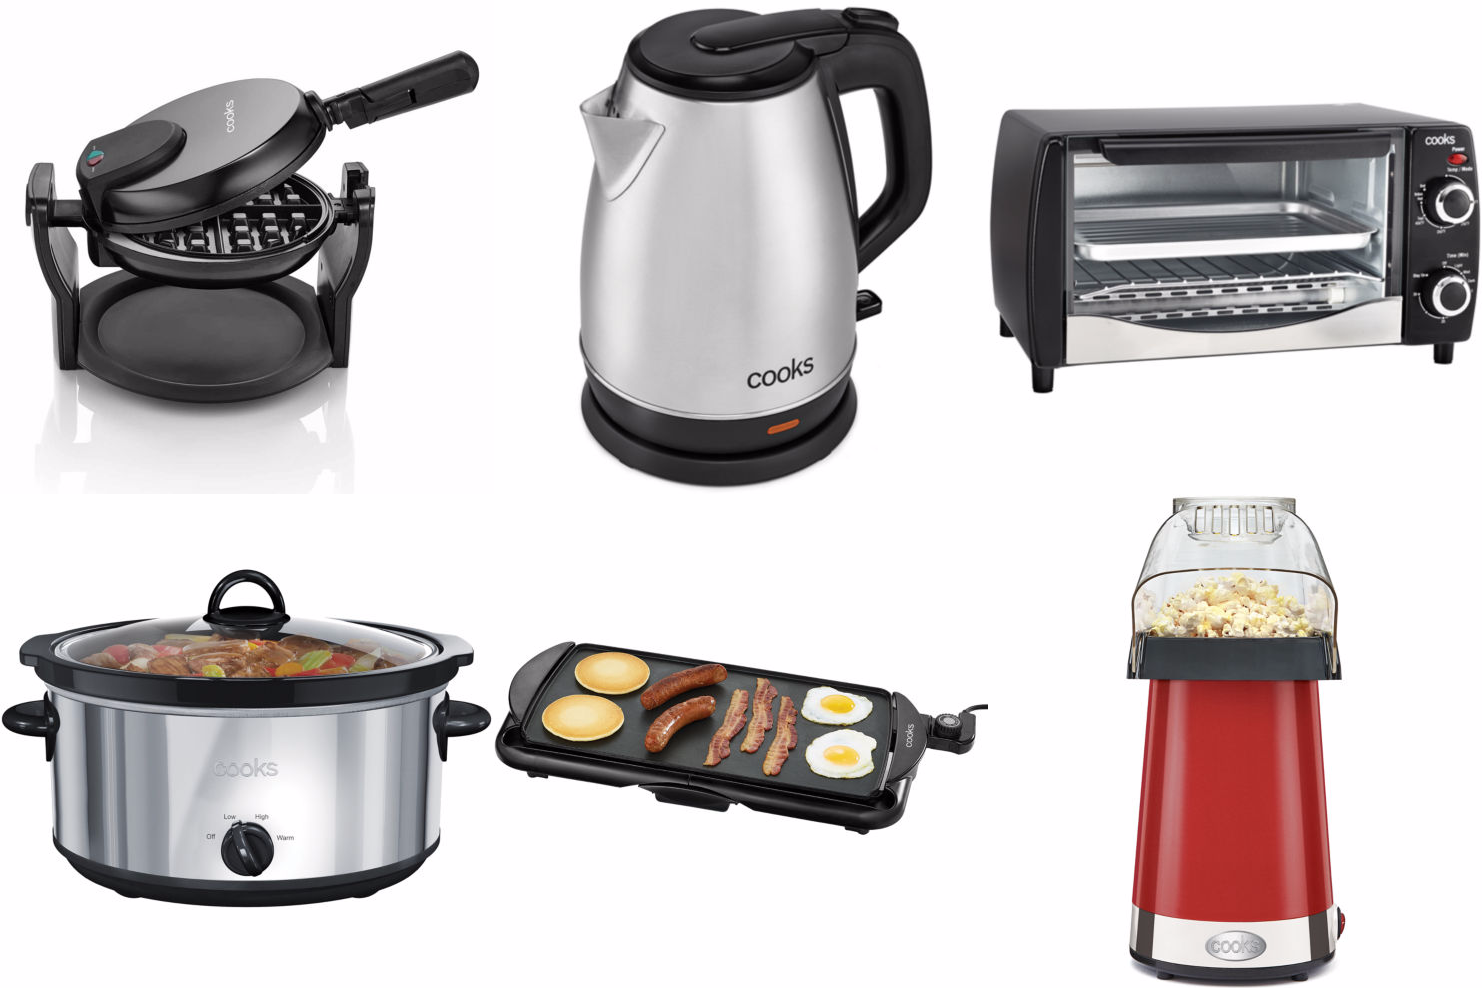 JcPenney: $7.99 After $12 Rebate Cooks Small Kitchen Appliances ...